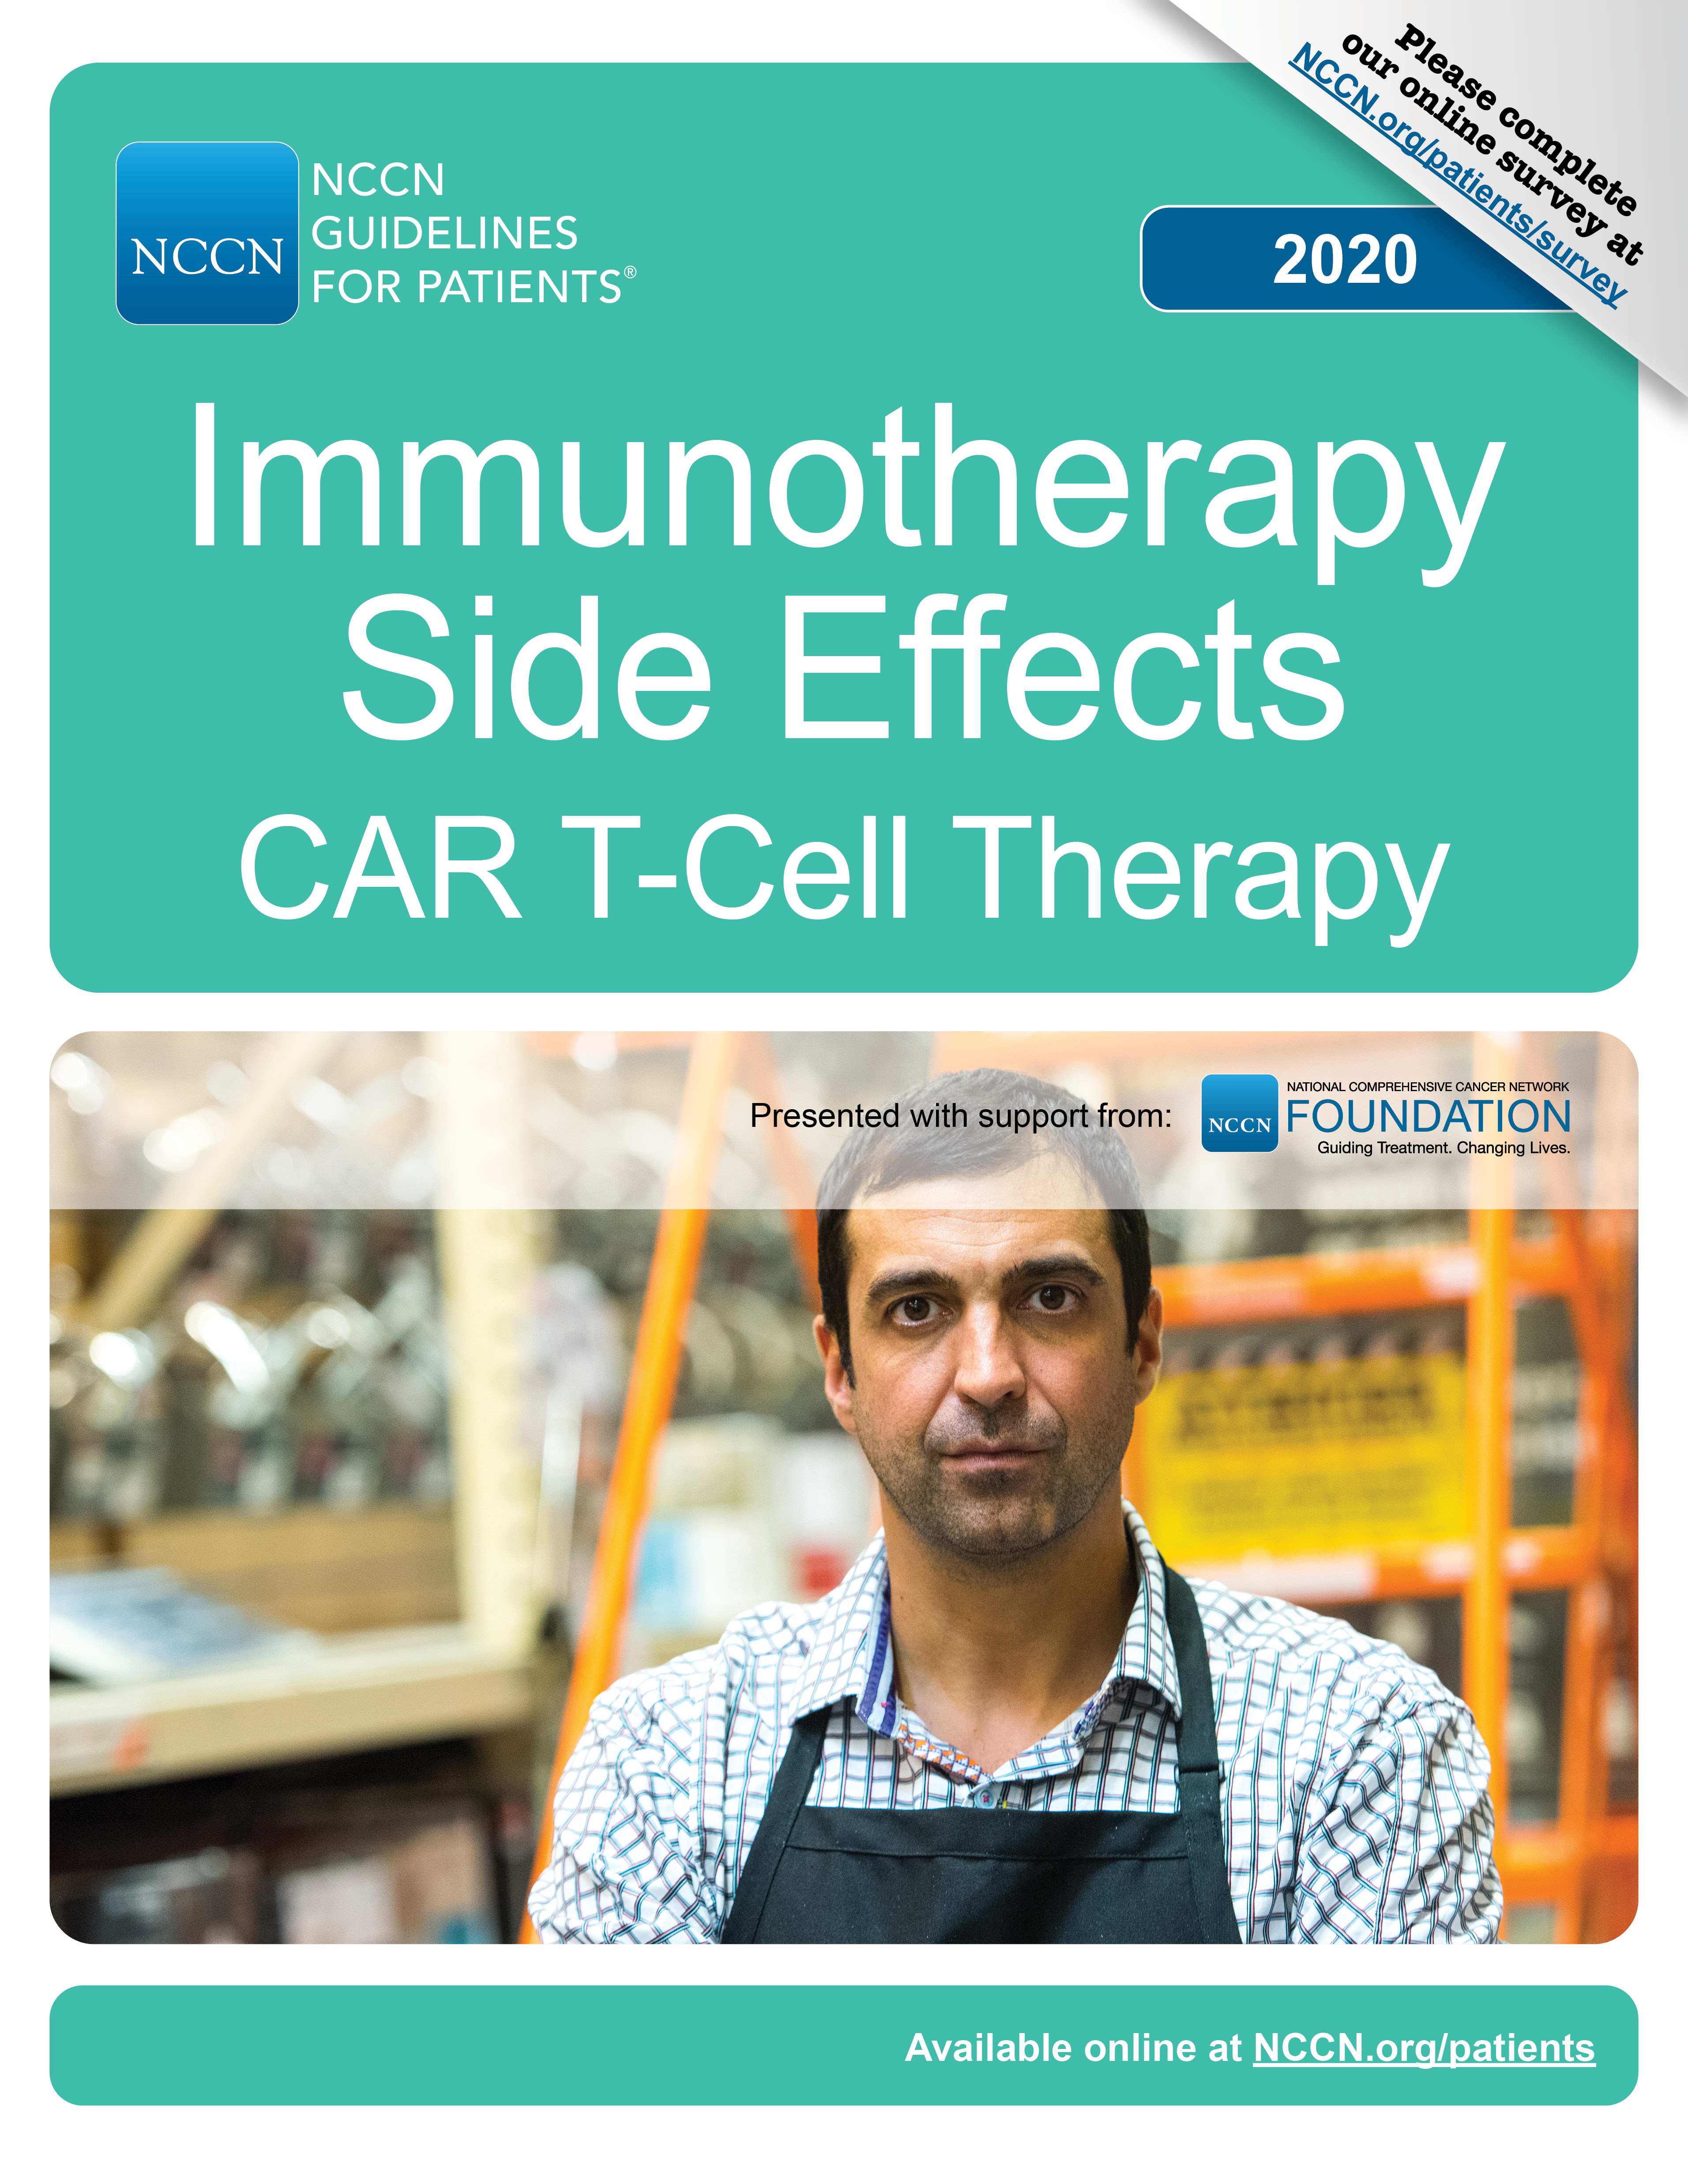 NCCN Guidelines for Patients®: Immunotherapy Side Effects -- CAR T-Cell Therapy